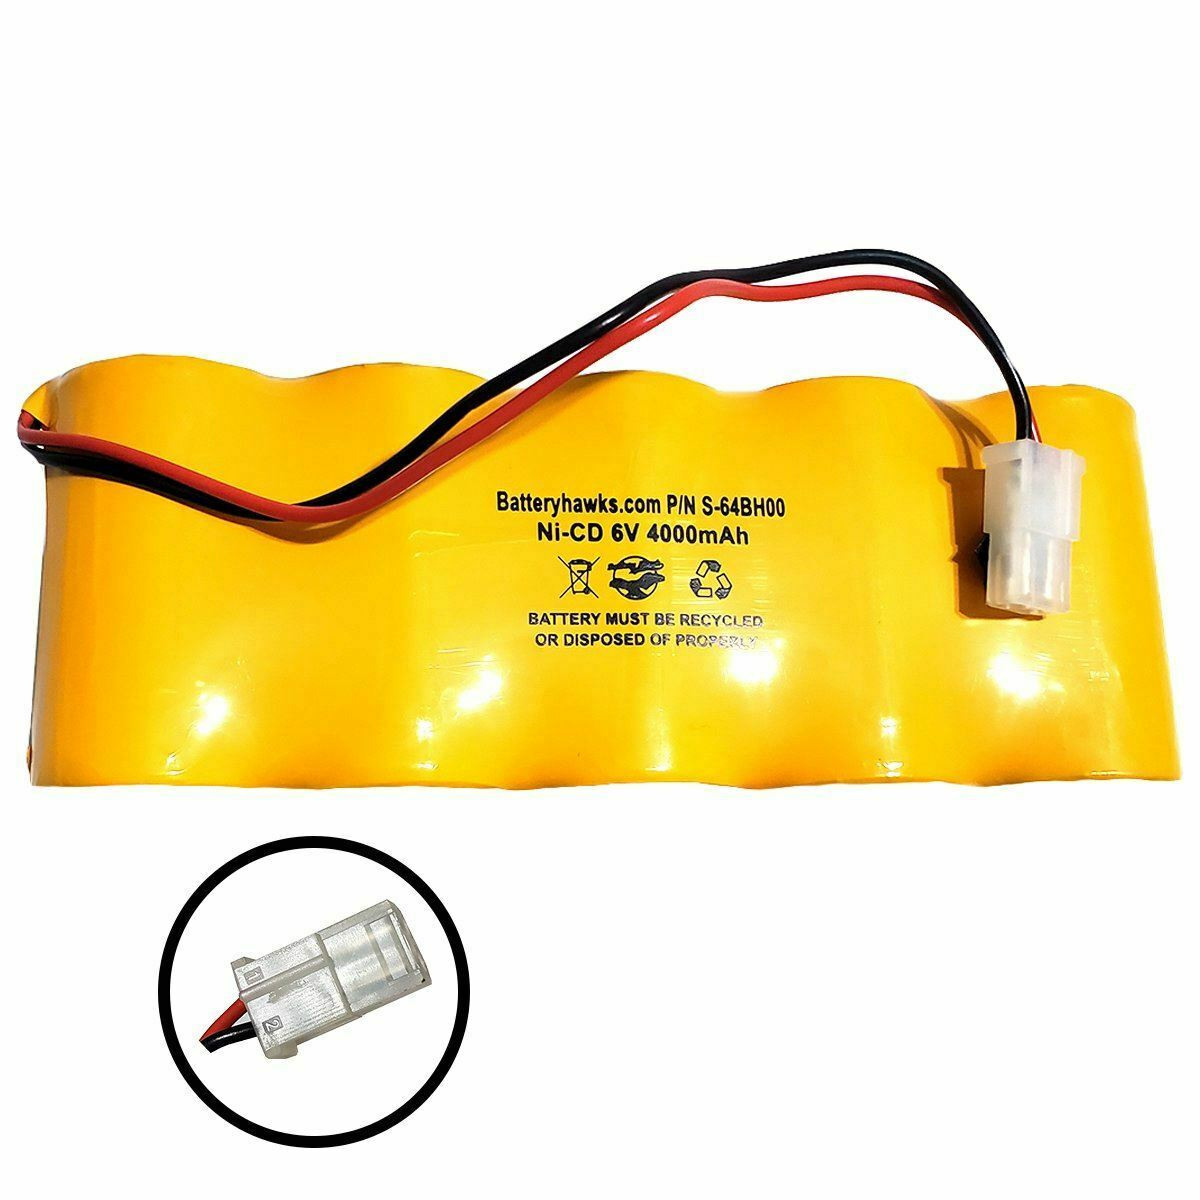 (FLAT) 6v 4000mAh Ni-CD Battery Pack Replacement for Exit Sign Emergency Light